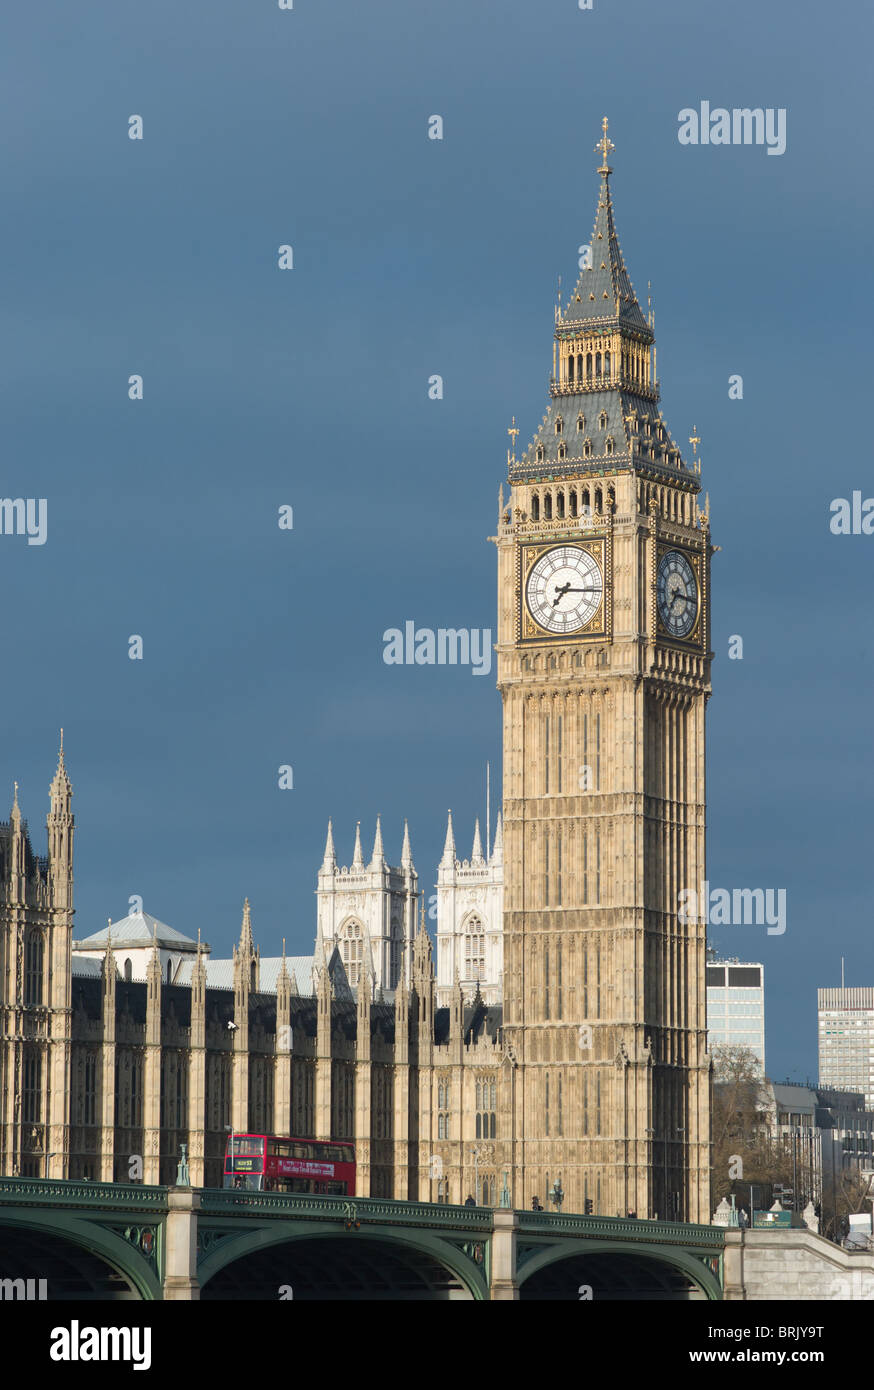 Big Ben clock tower (Elizabeth Tower) and double-decker bus on the Westminster Bridge in London, England, UK. - Stock Image